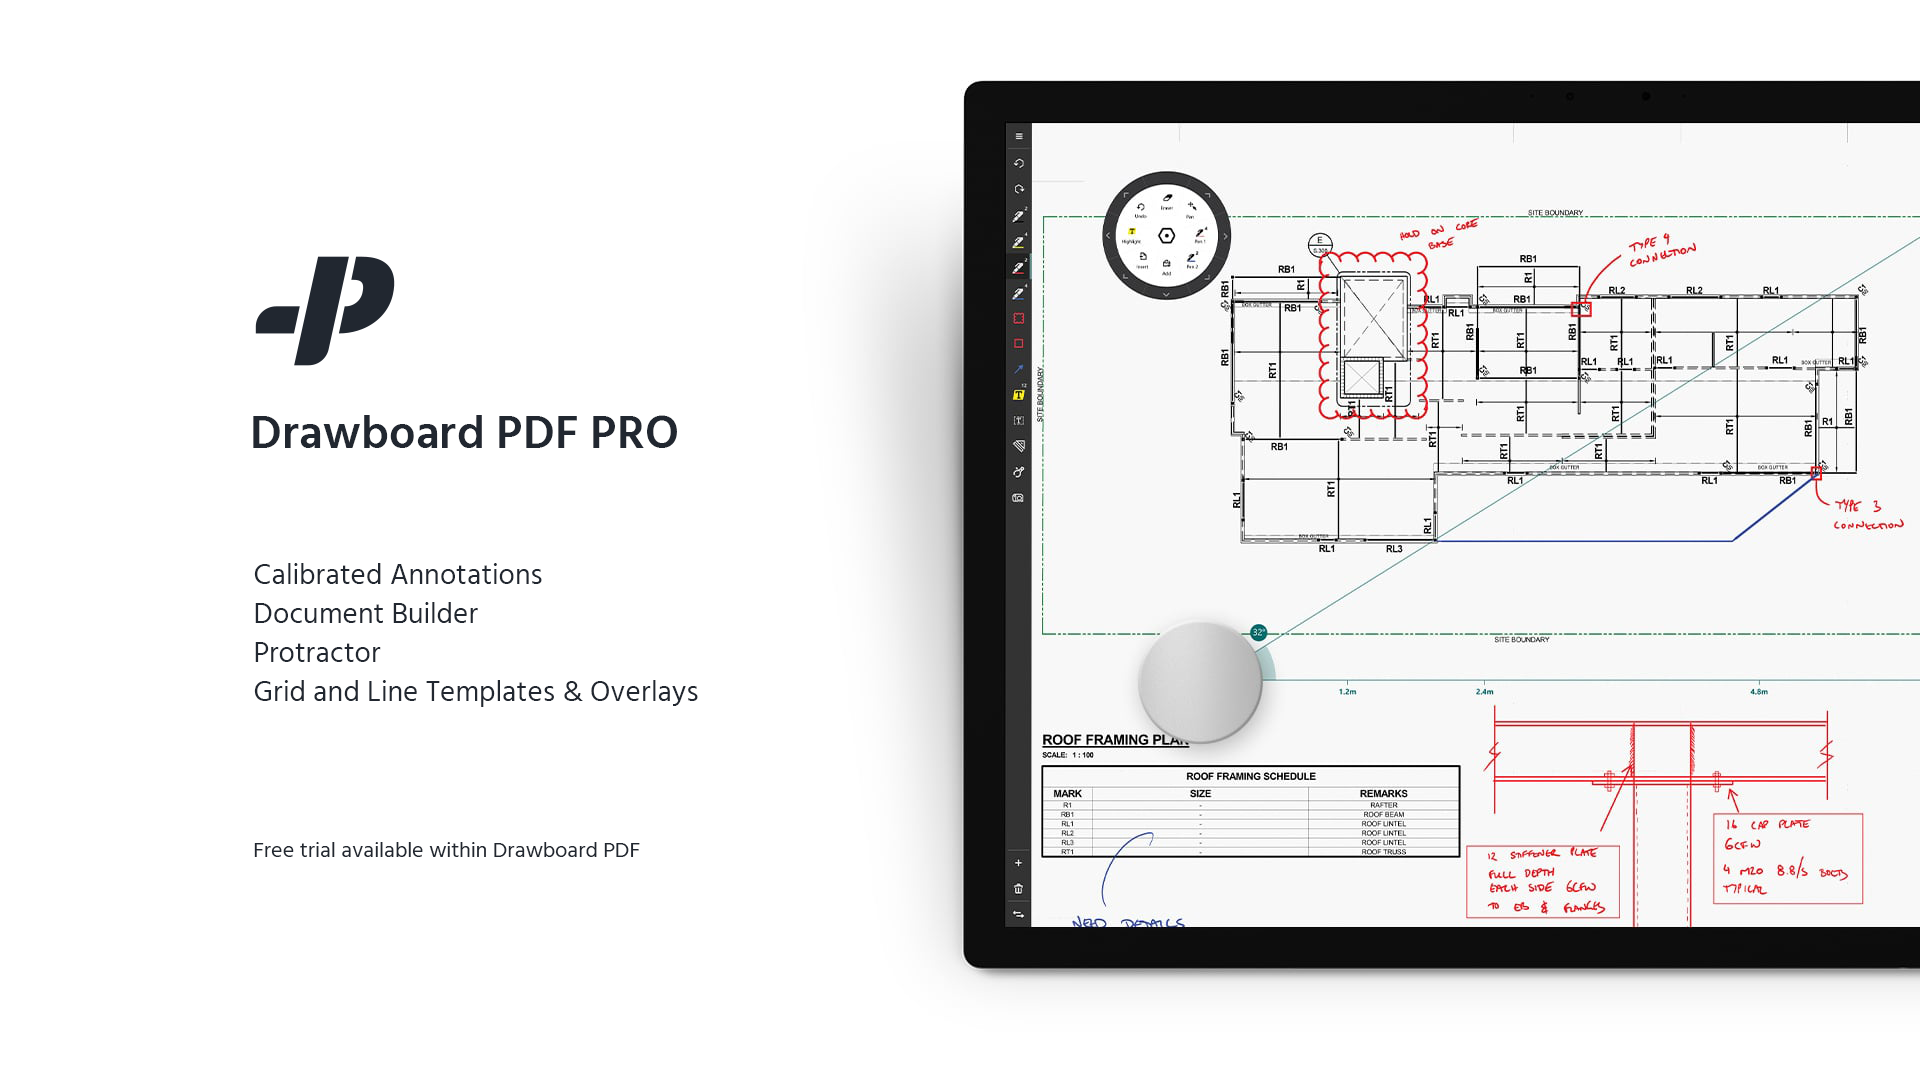 Drawboard PDF PRO: advanced PDF features and Surface Dial integration